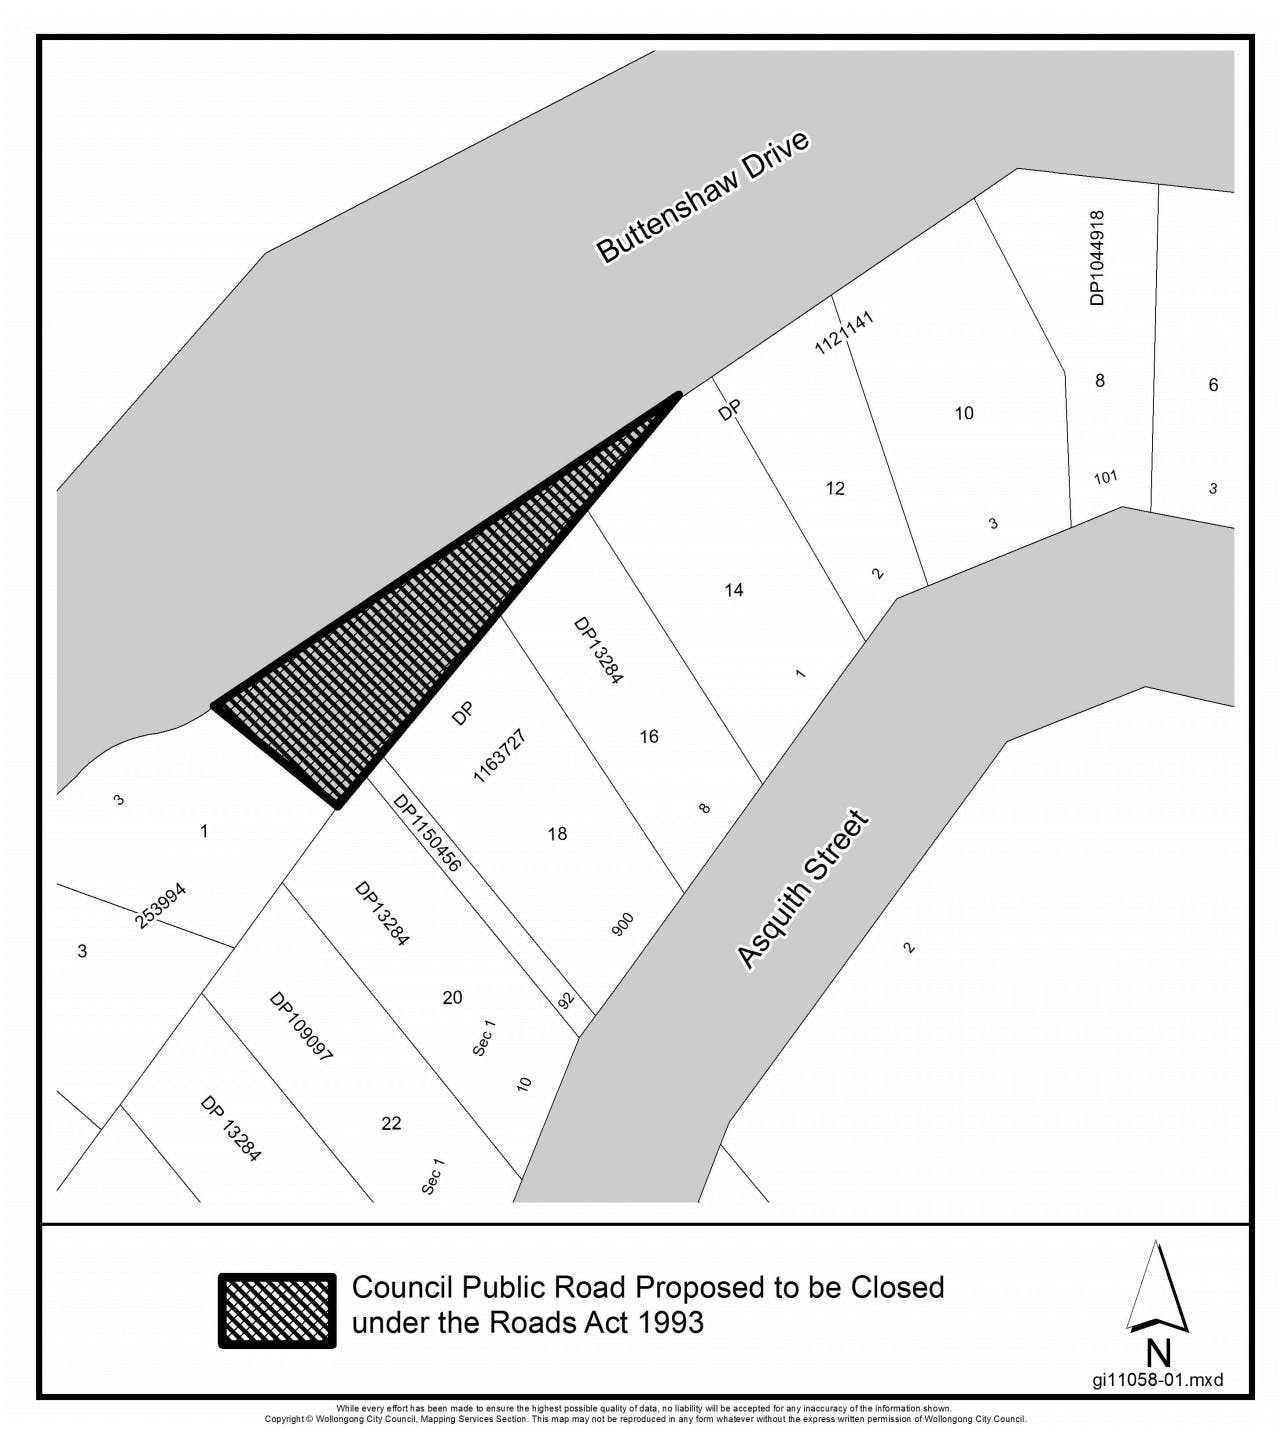 Proposed part closure of Buttenshaw Road